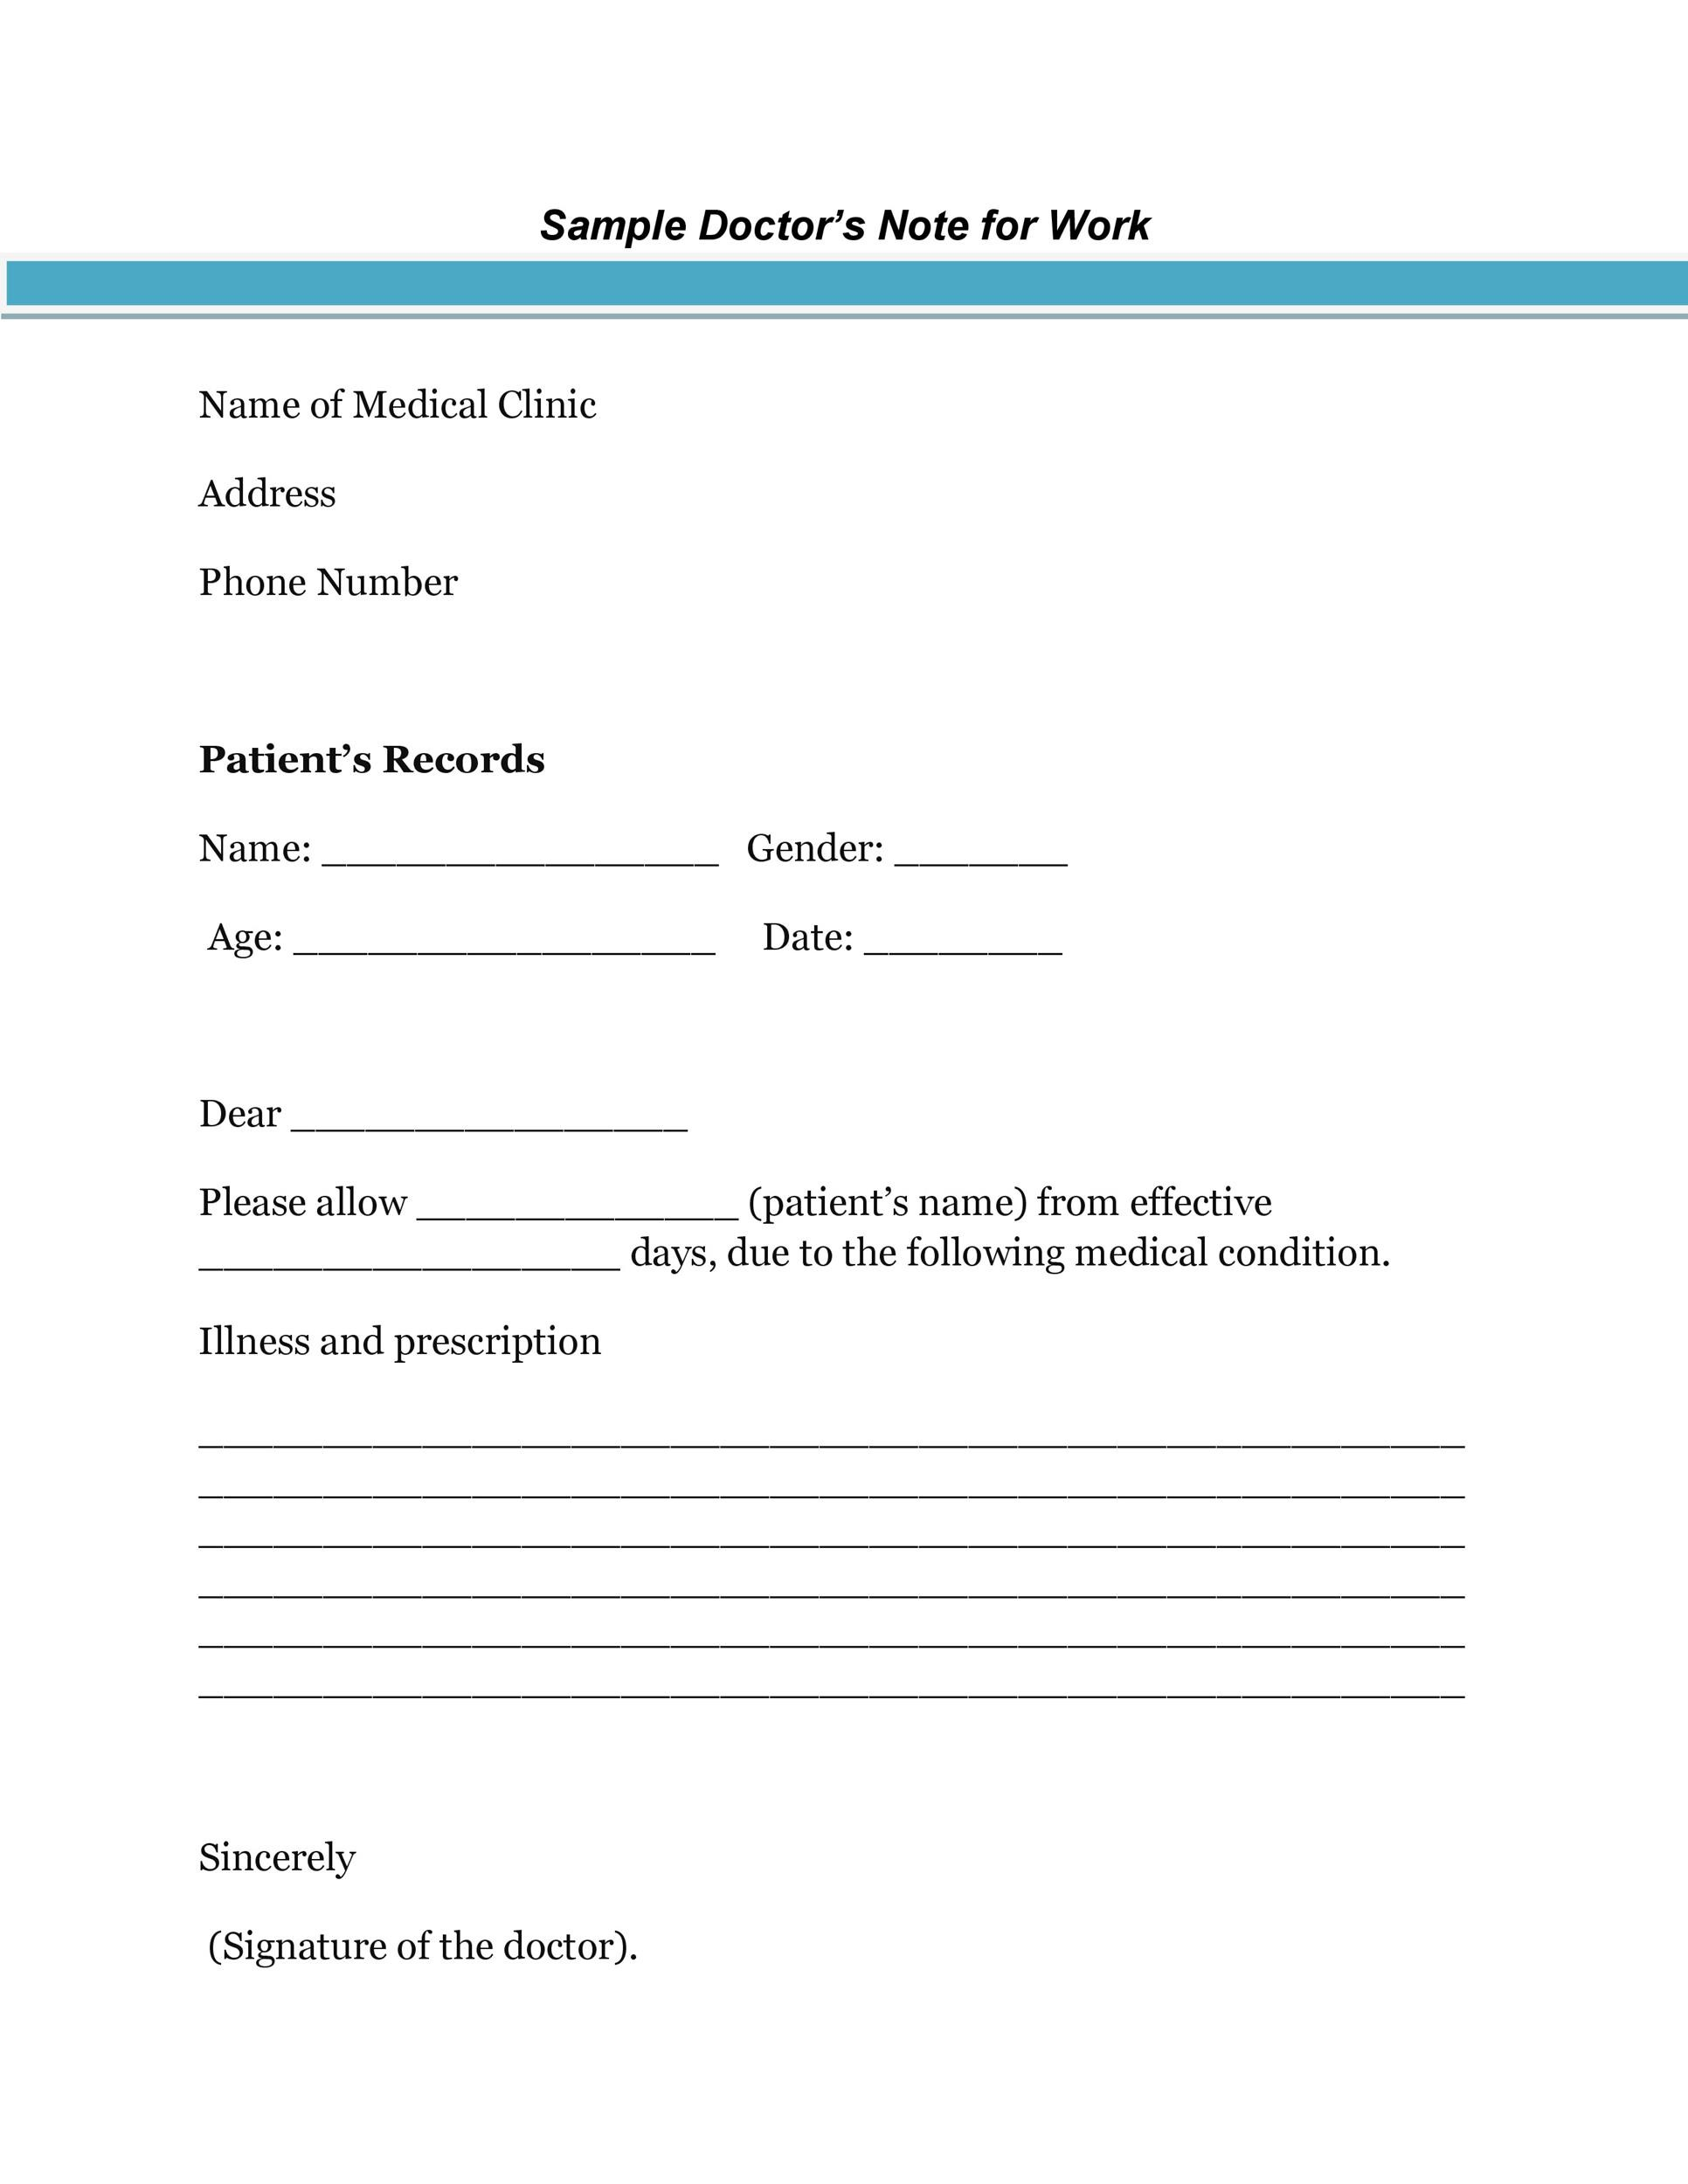 fake doctors note free - Muckgreenidesign - doctors note template